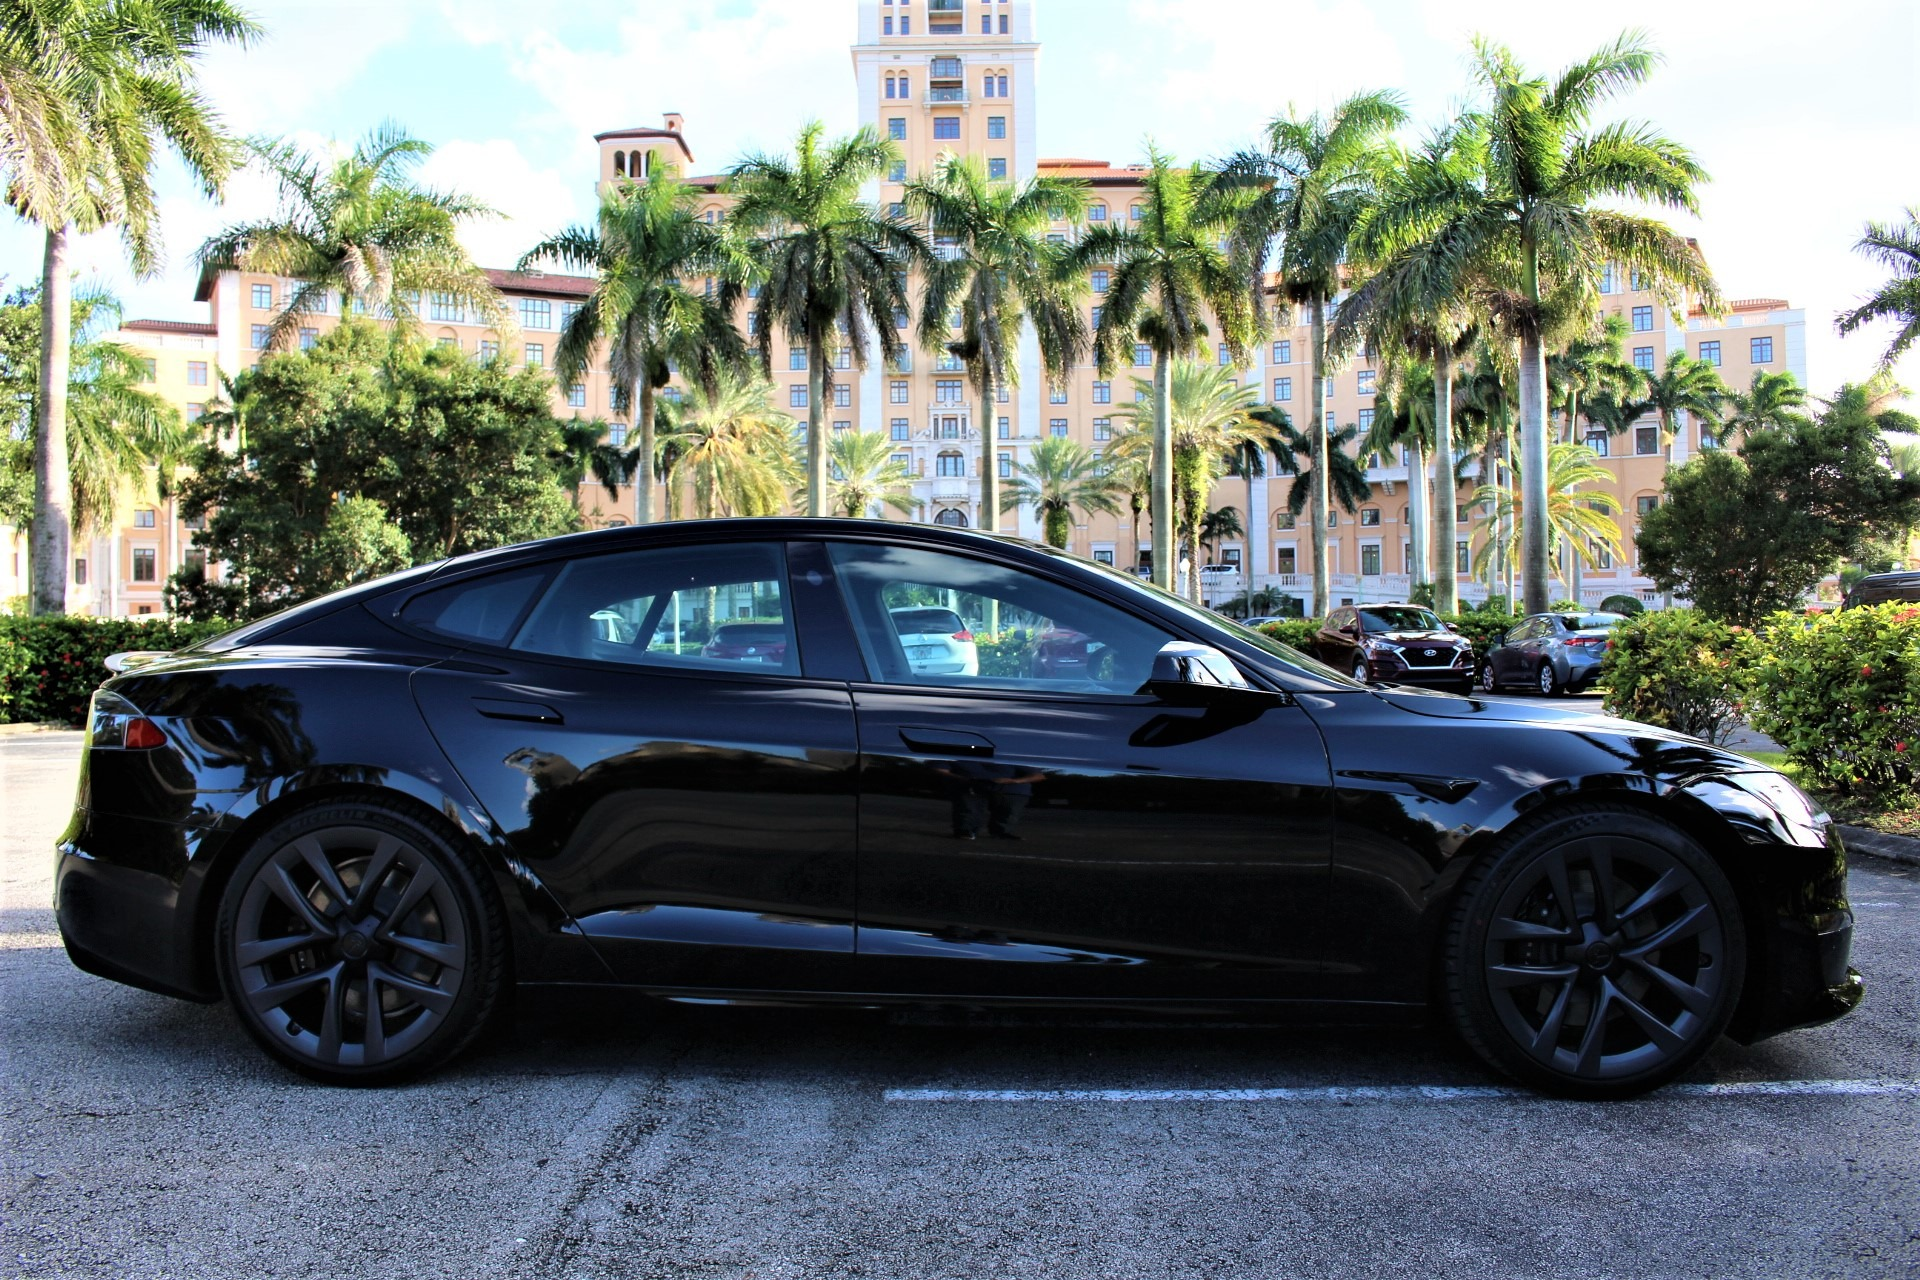 Used 2021 Tesla Model S Plaid for sale $148,850 at The Gables Sports Cars in Miami FL 33146 1